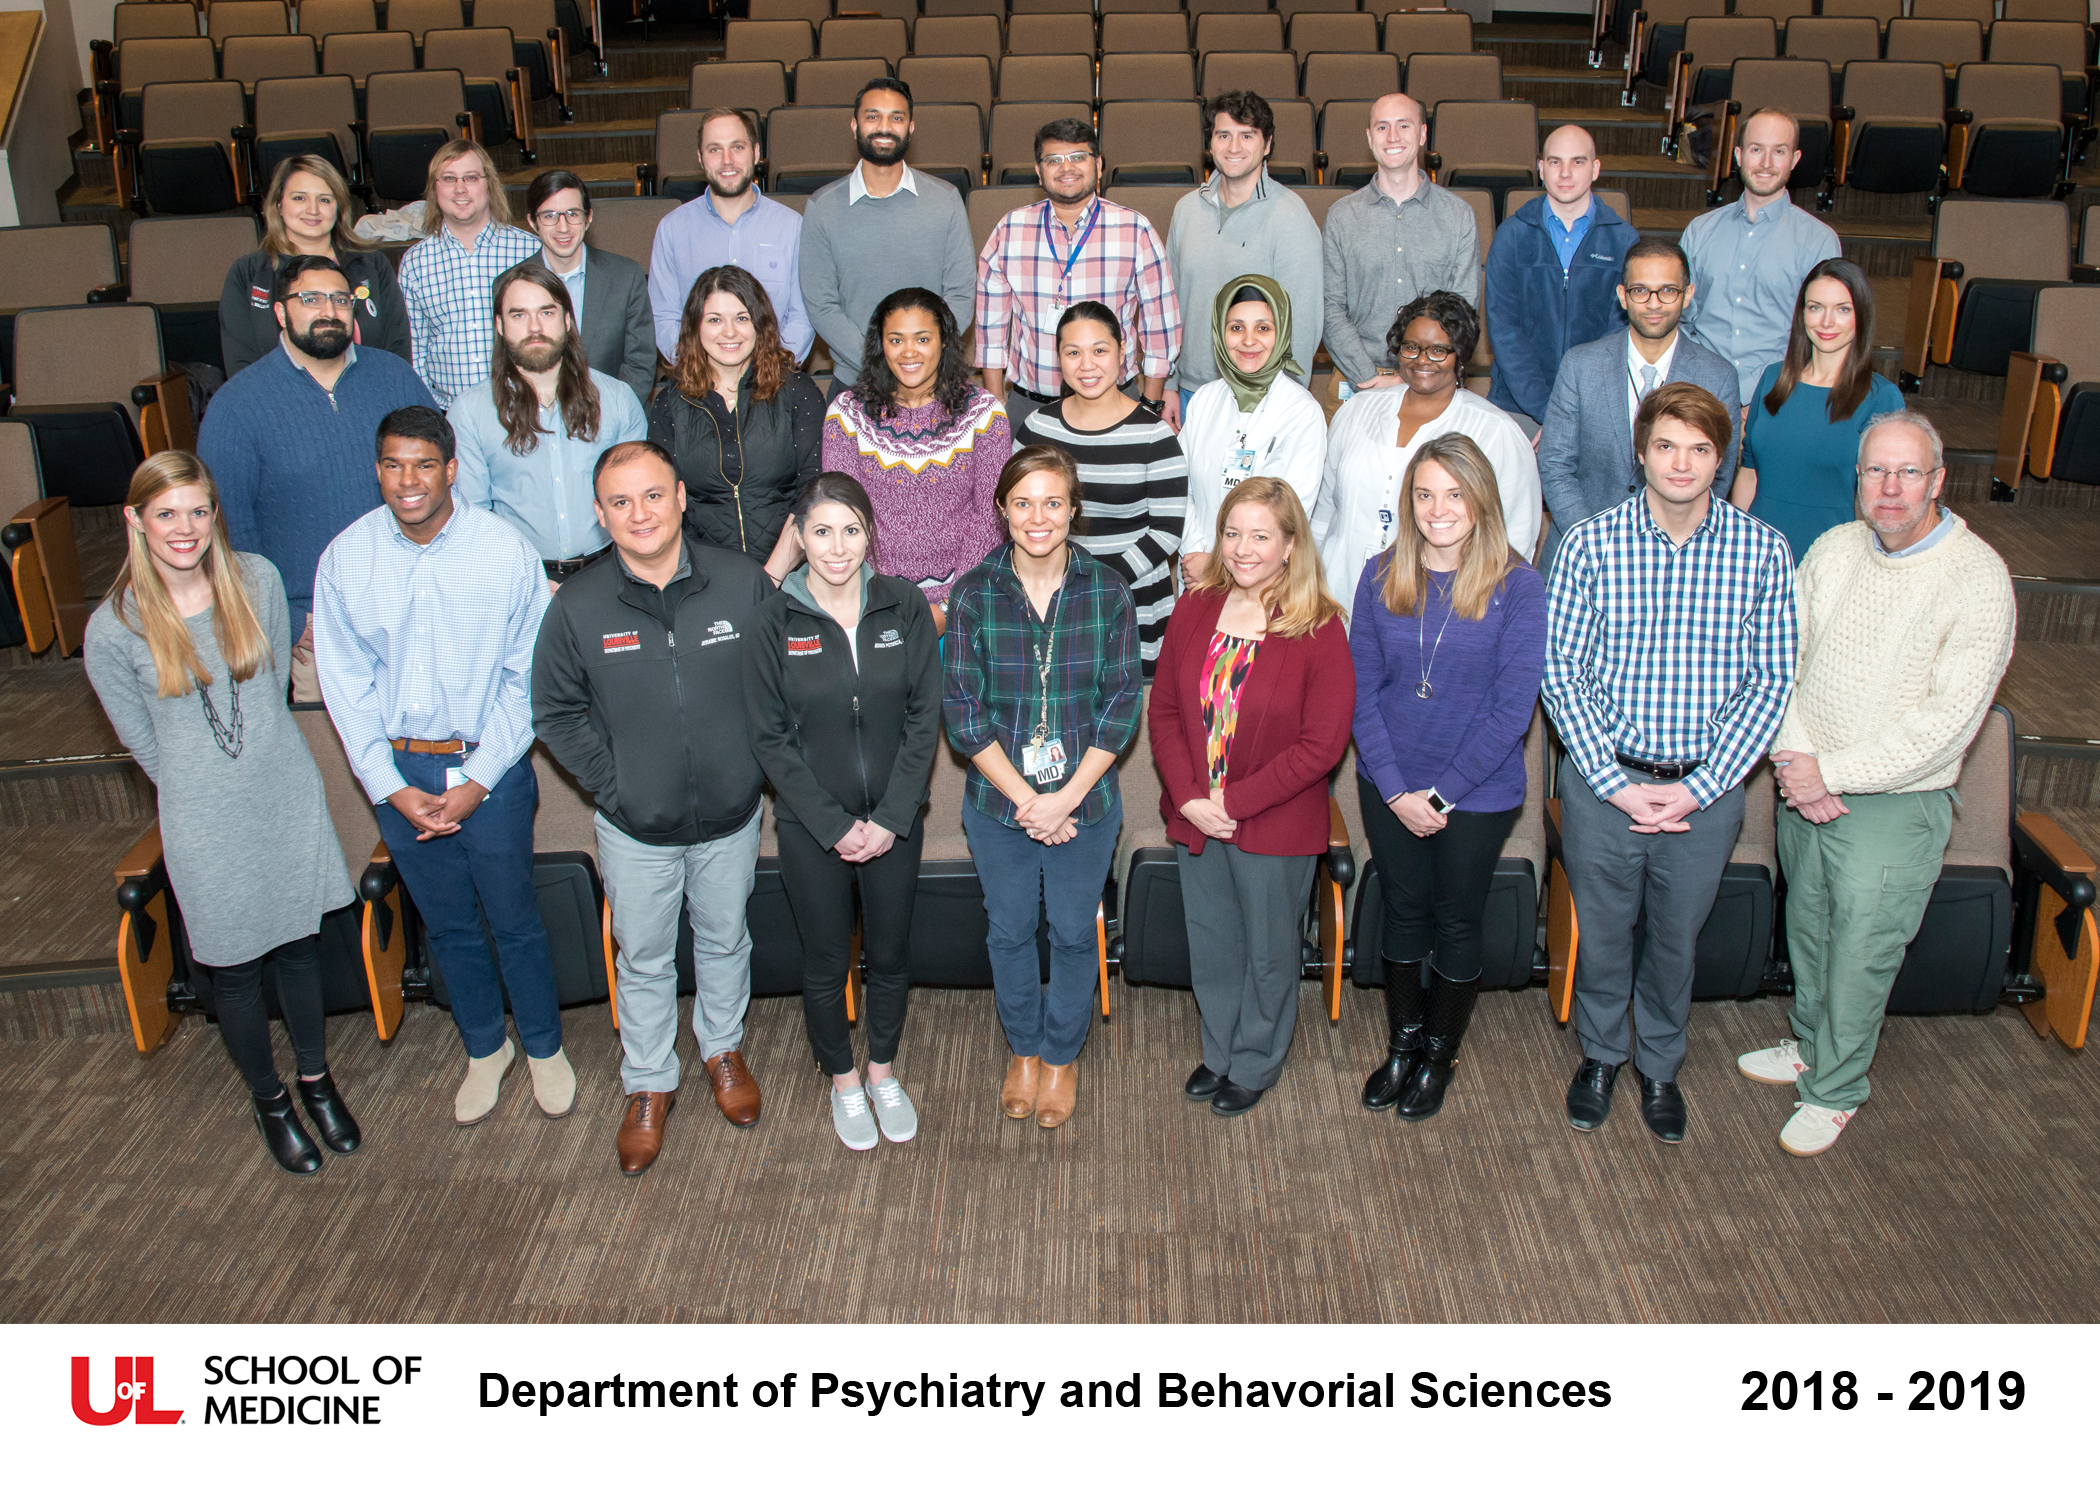 Group picture of the 2018-2019 residents